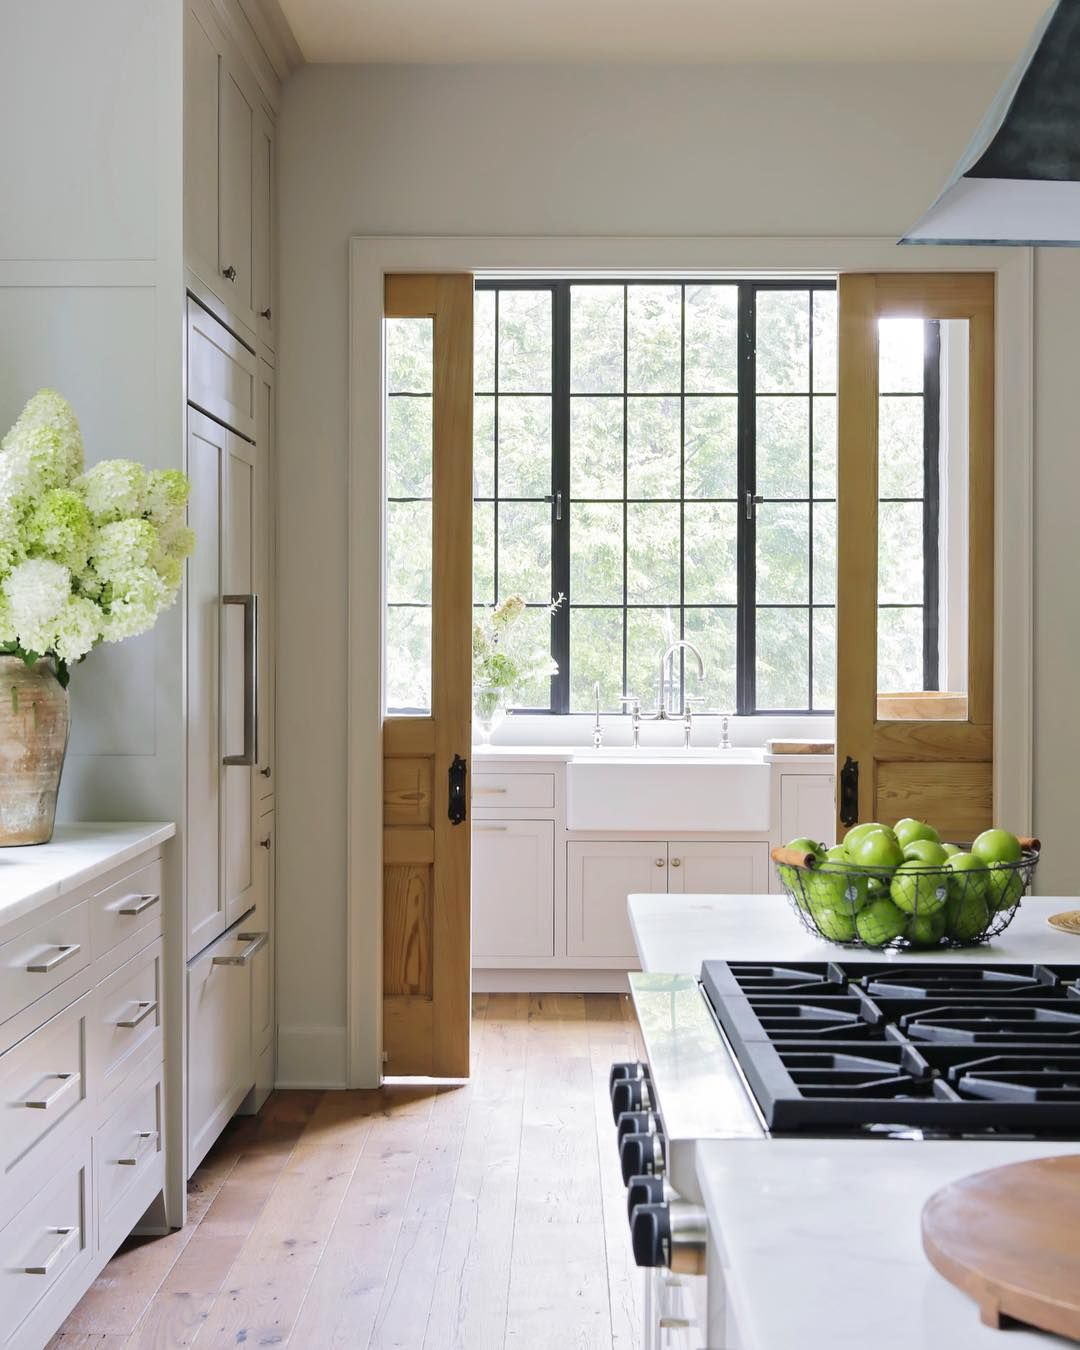 Kitchen Design And Layout Definition: Pin By Dianne Wright On Kitchens In 2018